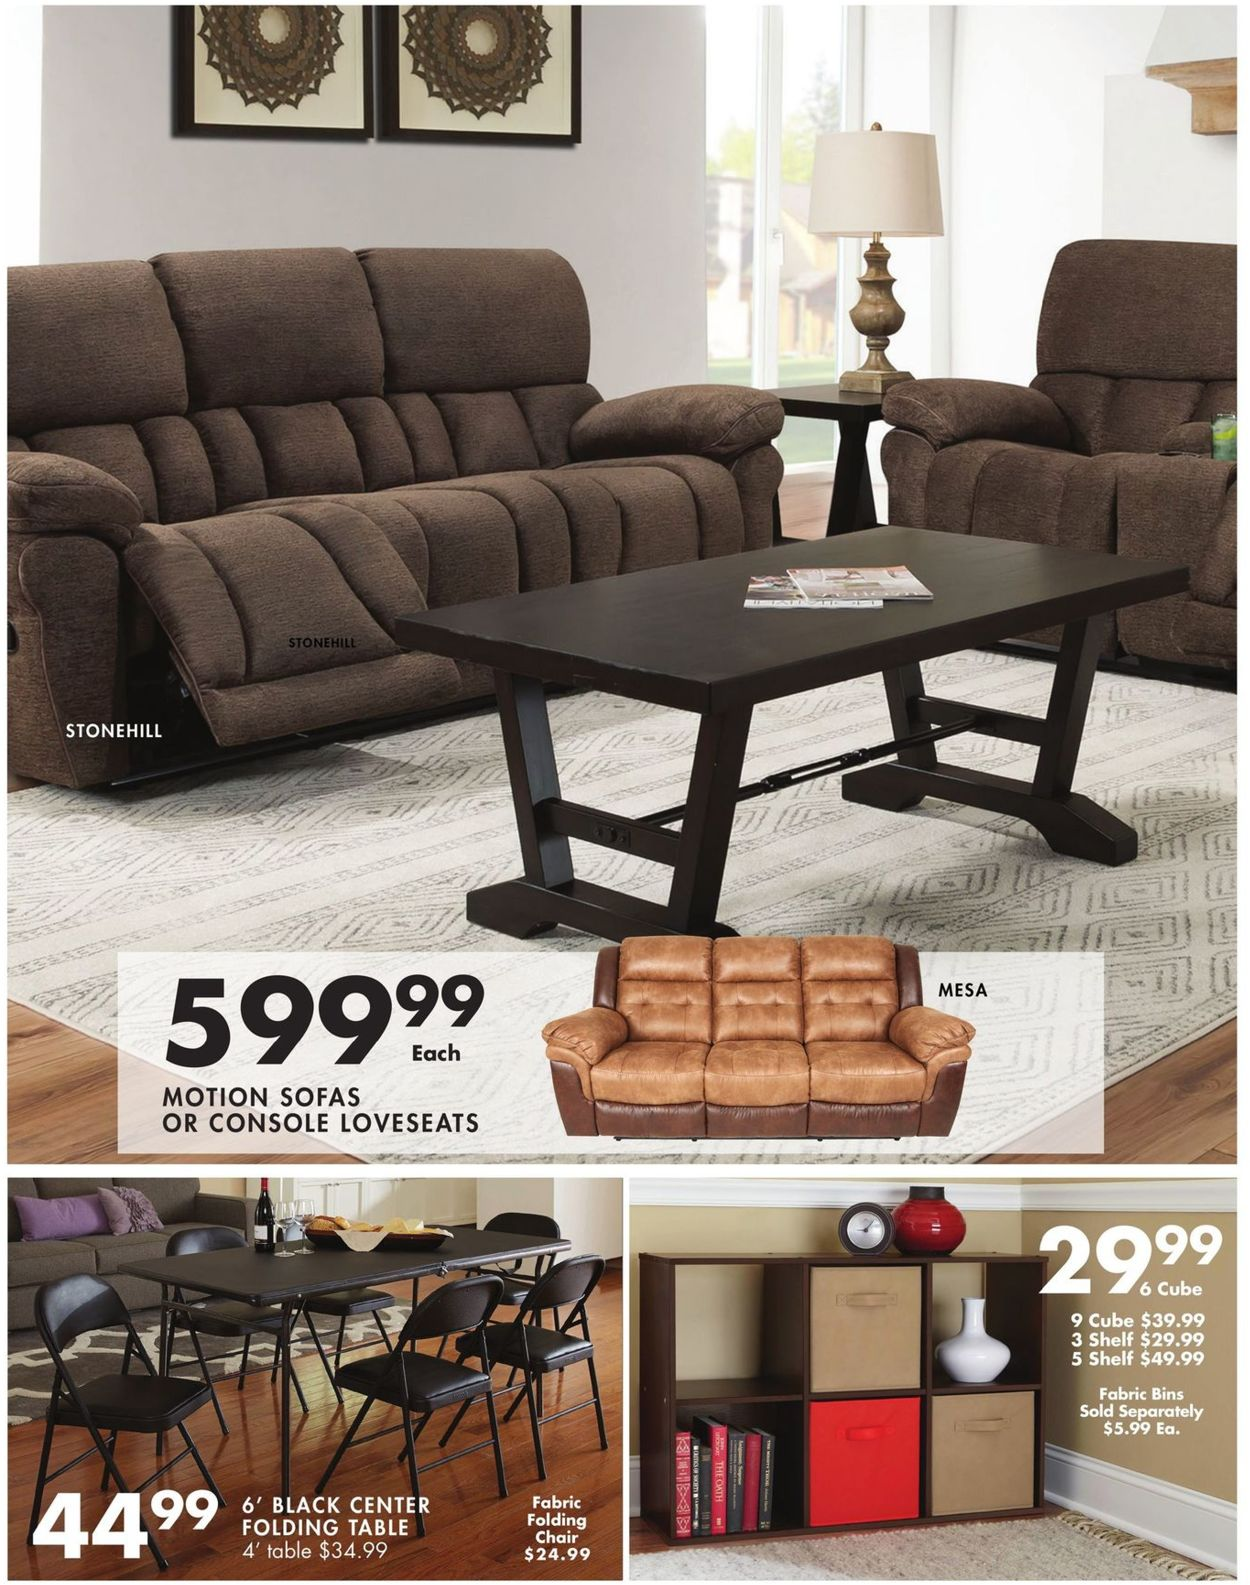 - Big Lots Current Weekly Ad 11/02 - 11/09/2019 [6] - Frequent-ads.com